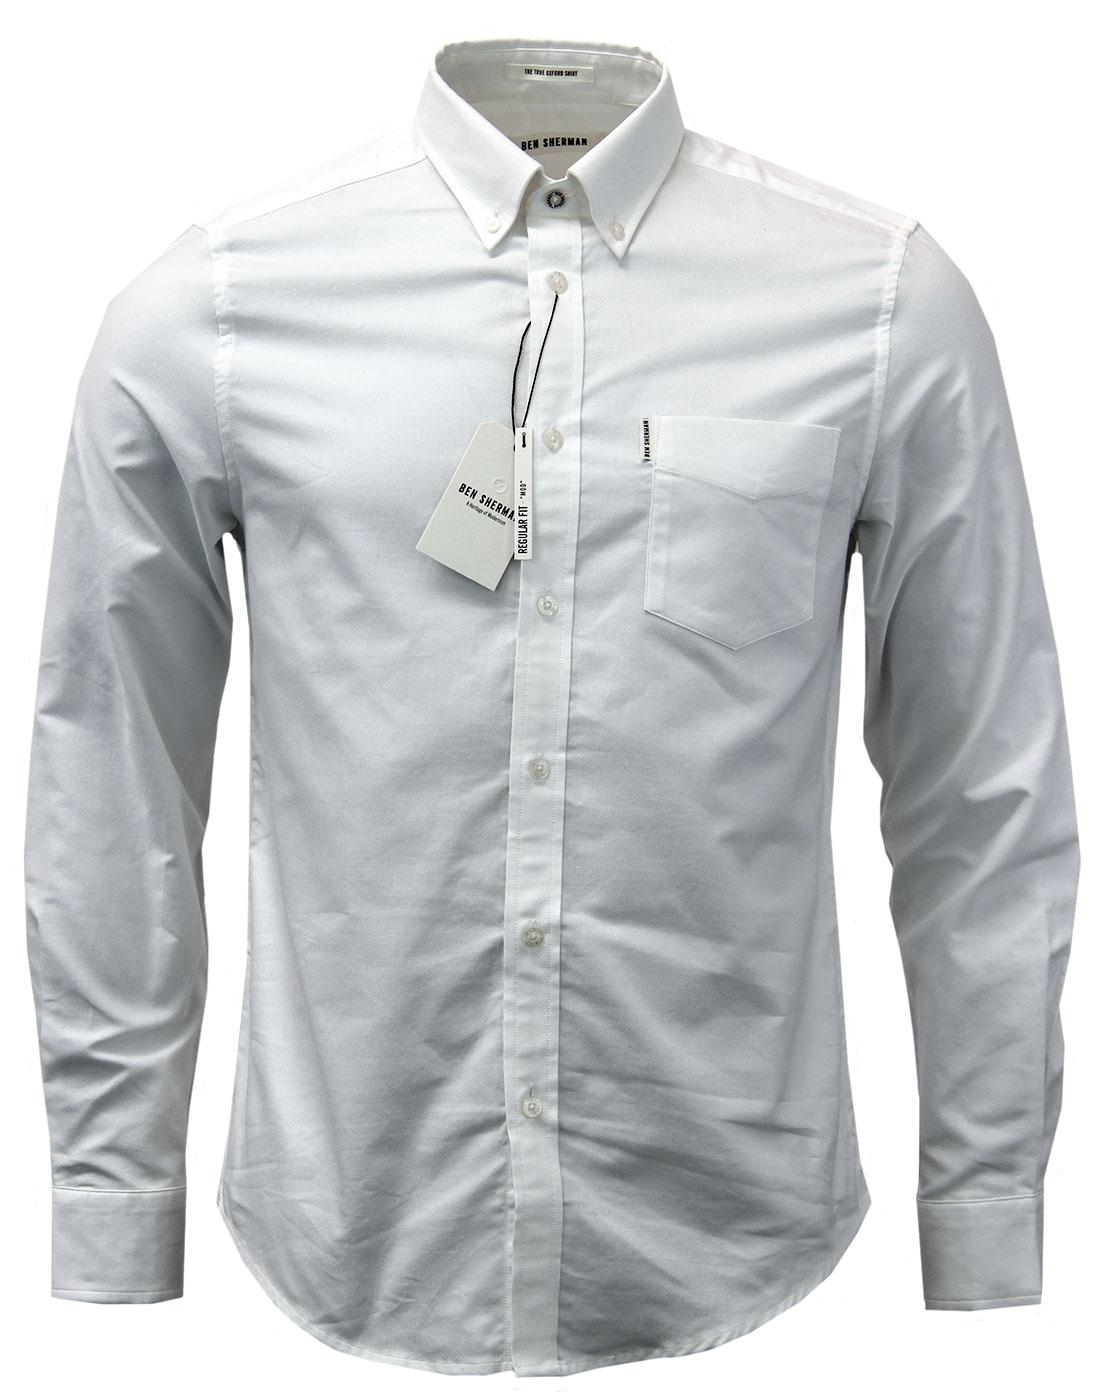 Ben sherman retro mod button down ivy league oxford shirt for White button down collar oxford shirt